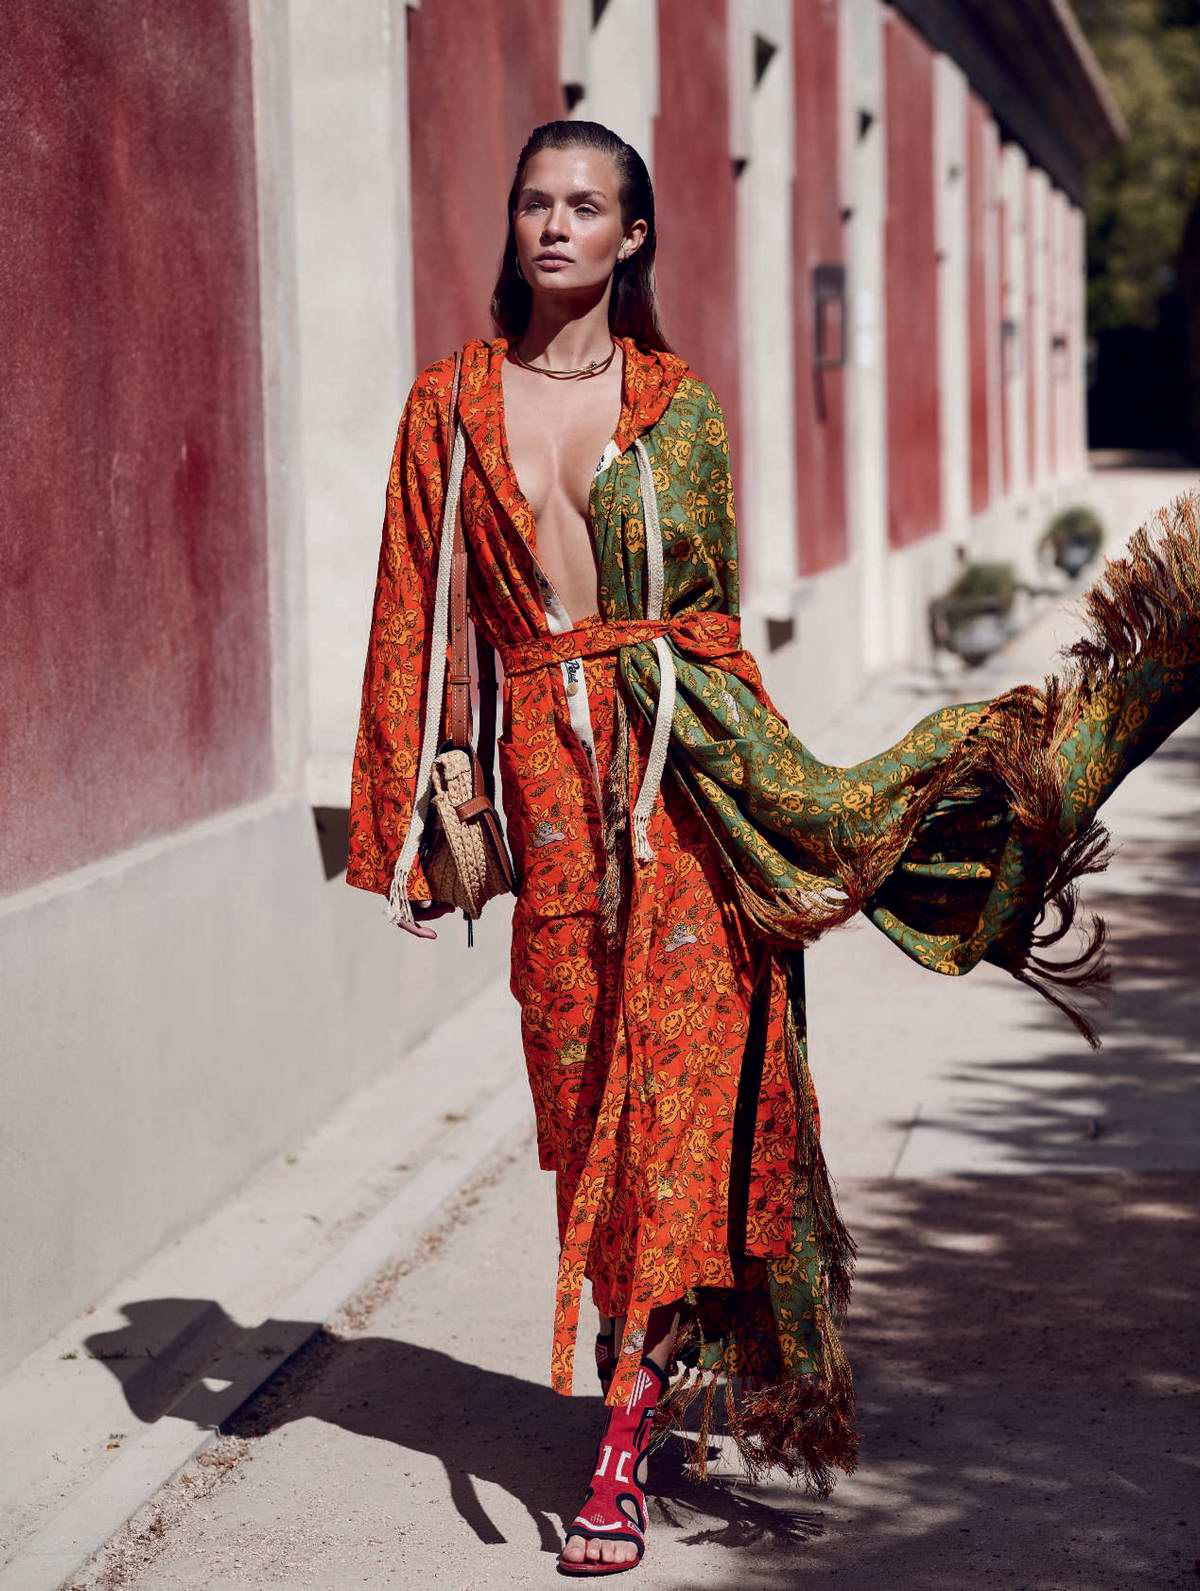 Josephine Skriver features in Marie Claire, Italia - May 2019